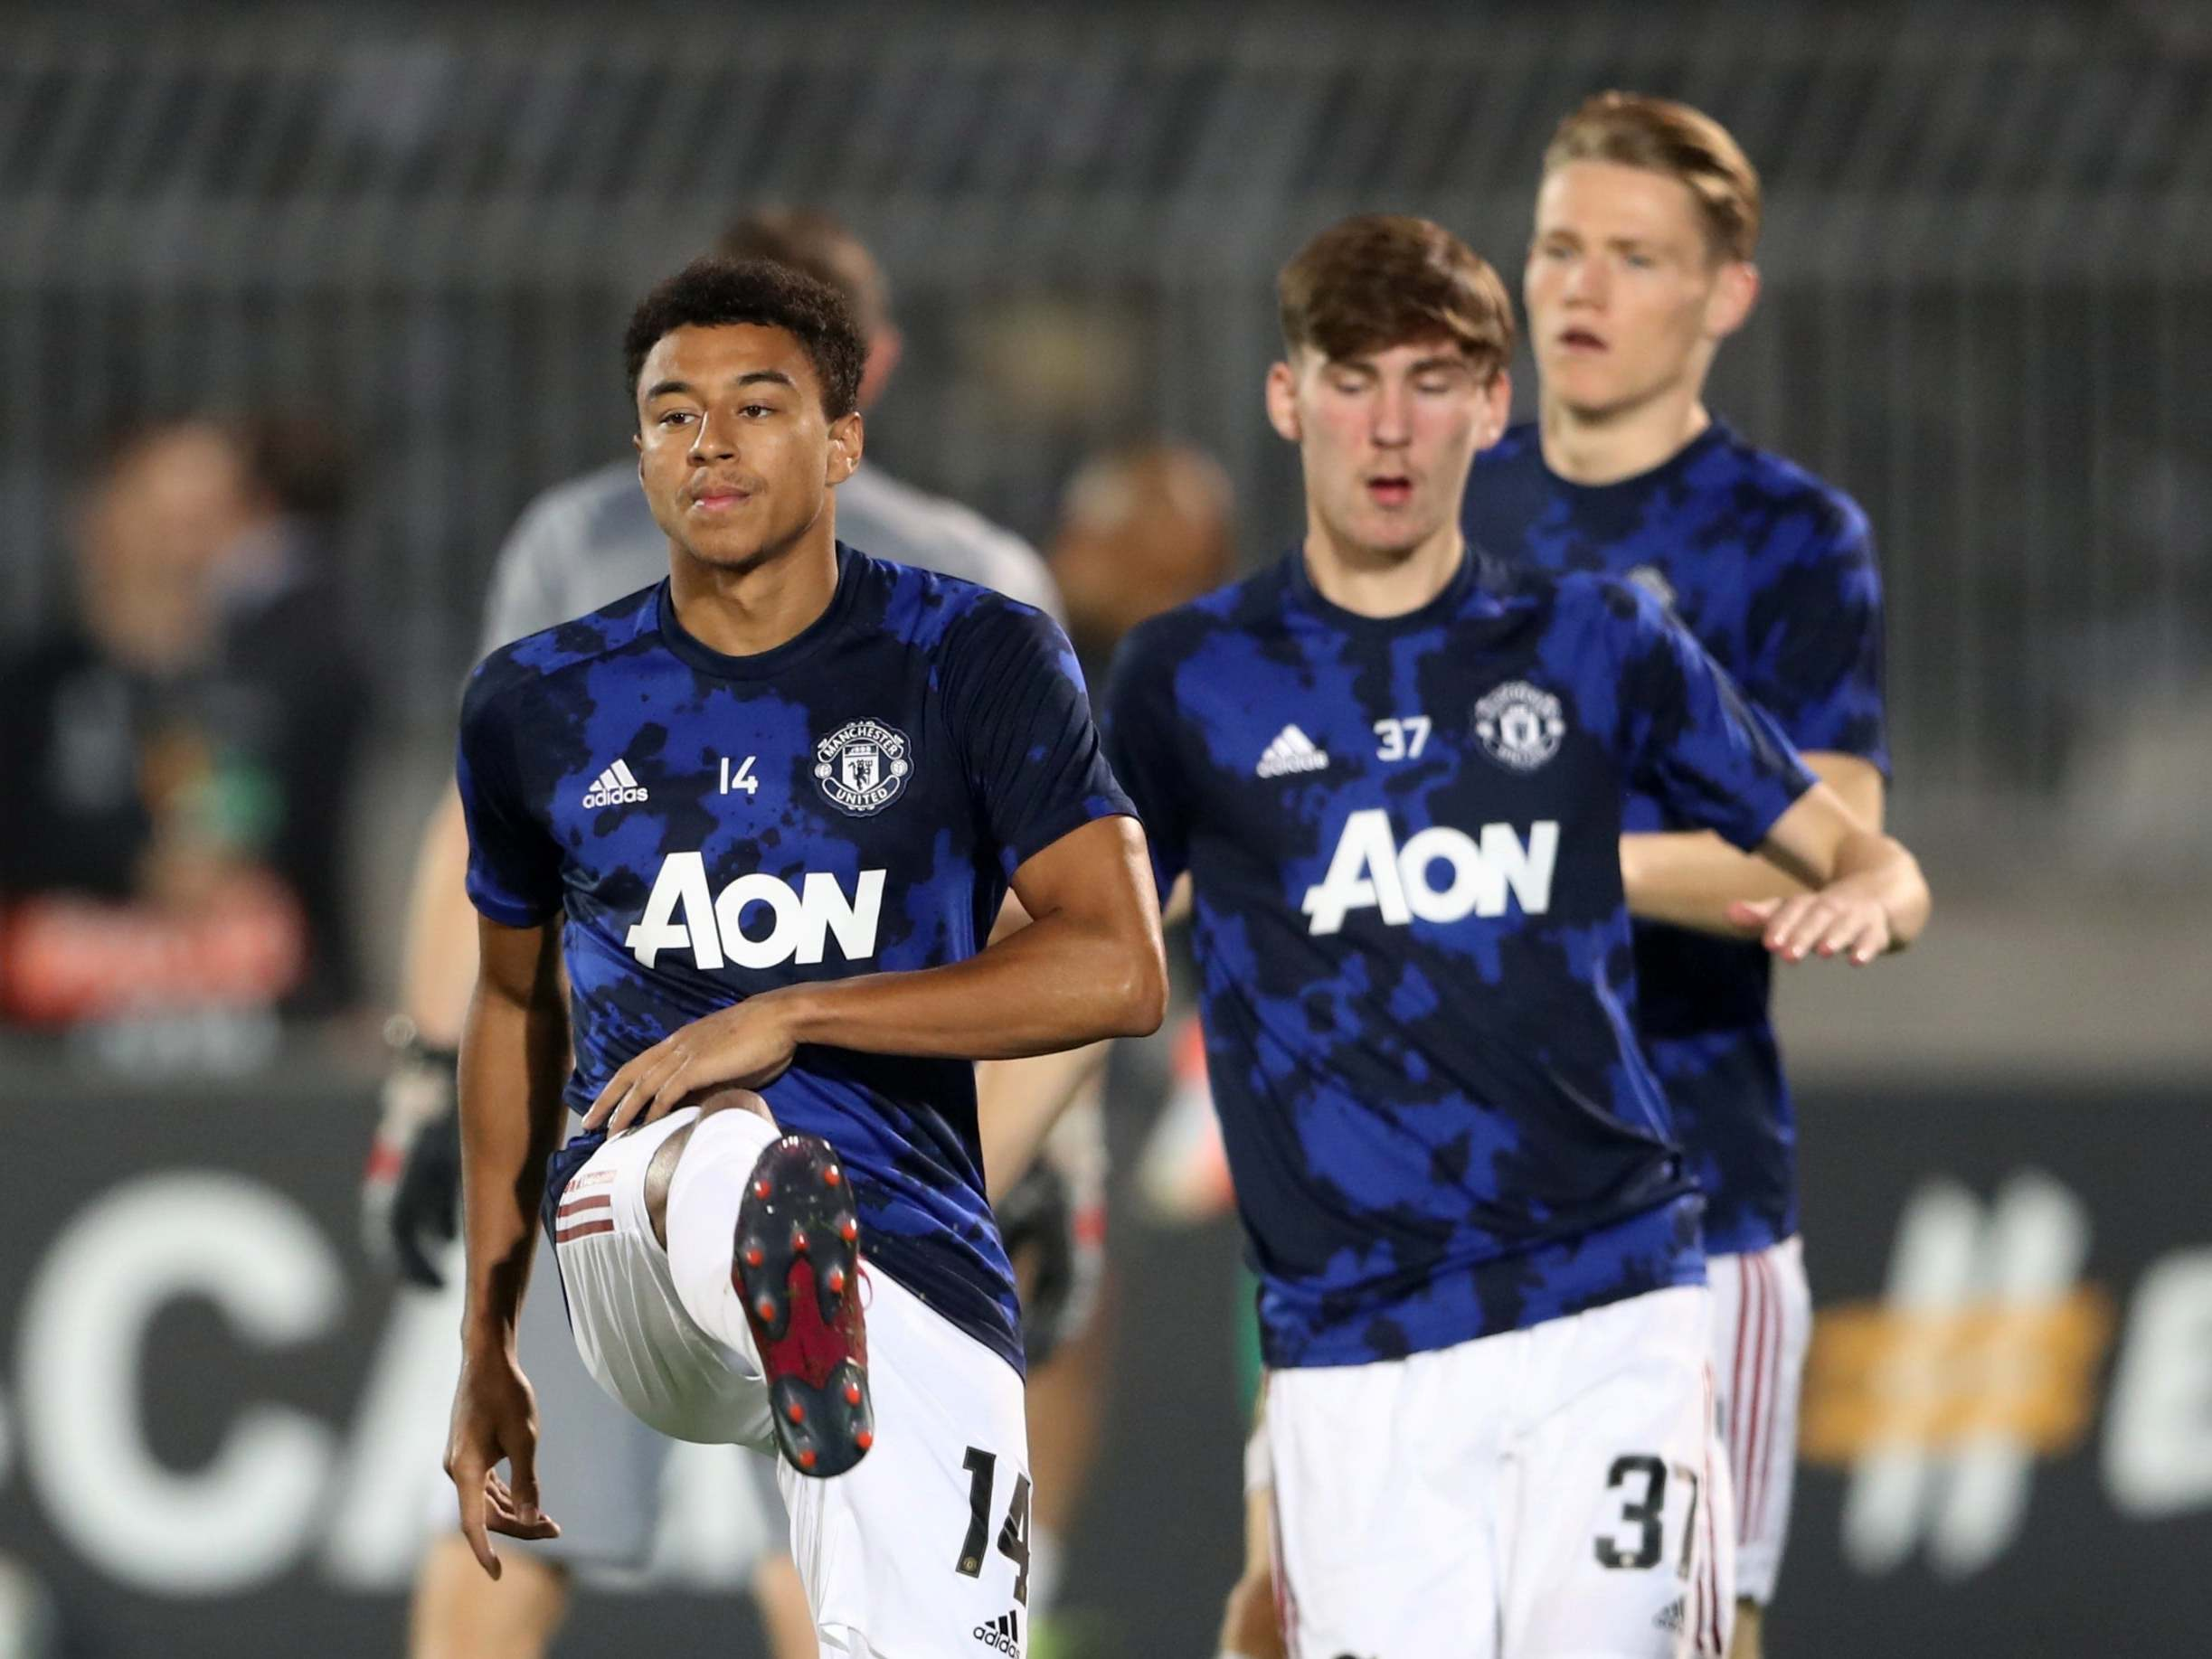 Partizan vs Manchester United LIVE: Stream, score, goals and latest updates from Europa League